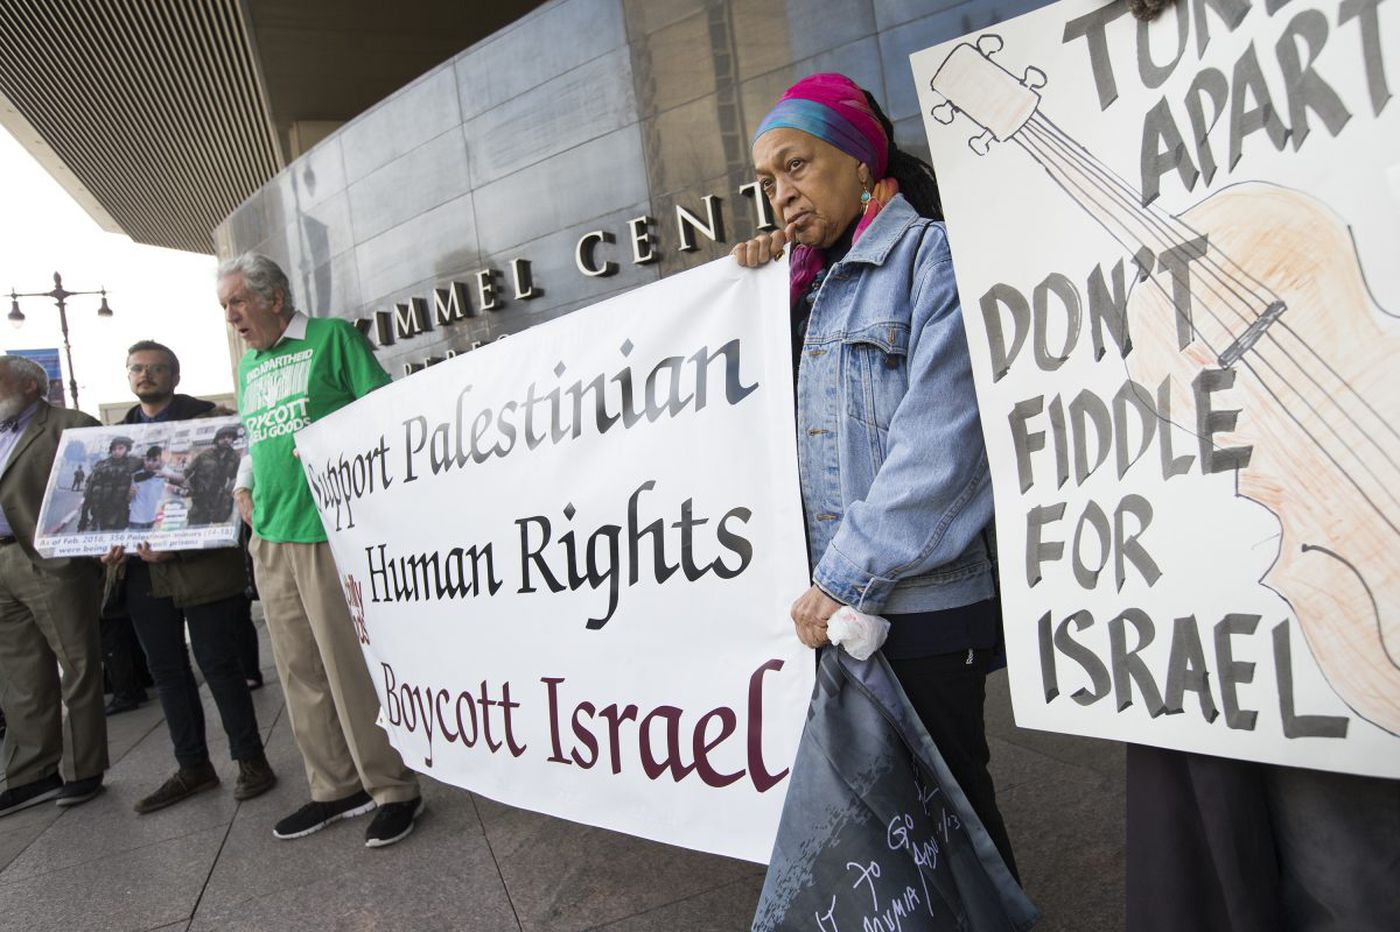 Pro-Palestinian activists protest the Philadelphia Orchestra's Israel tour